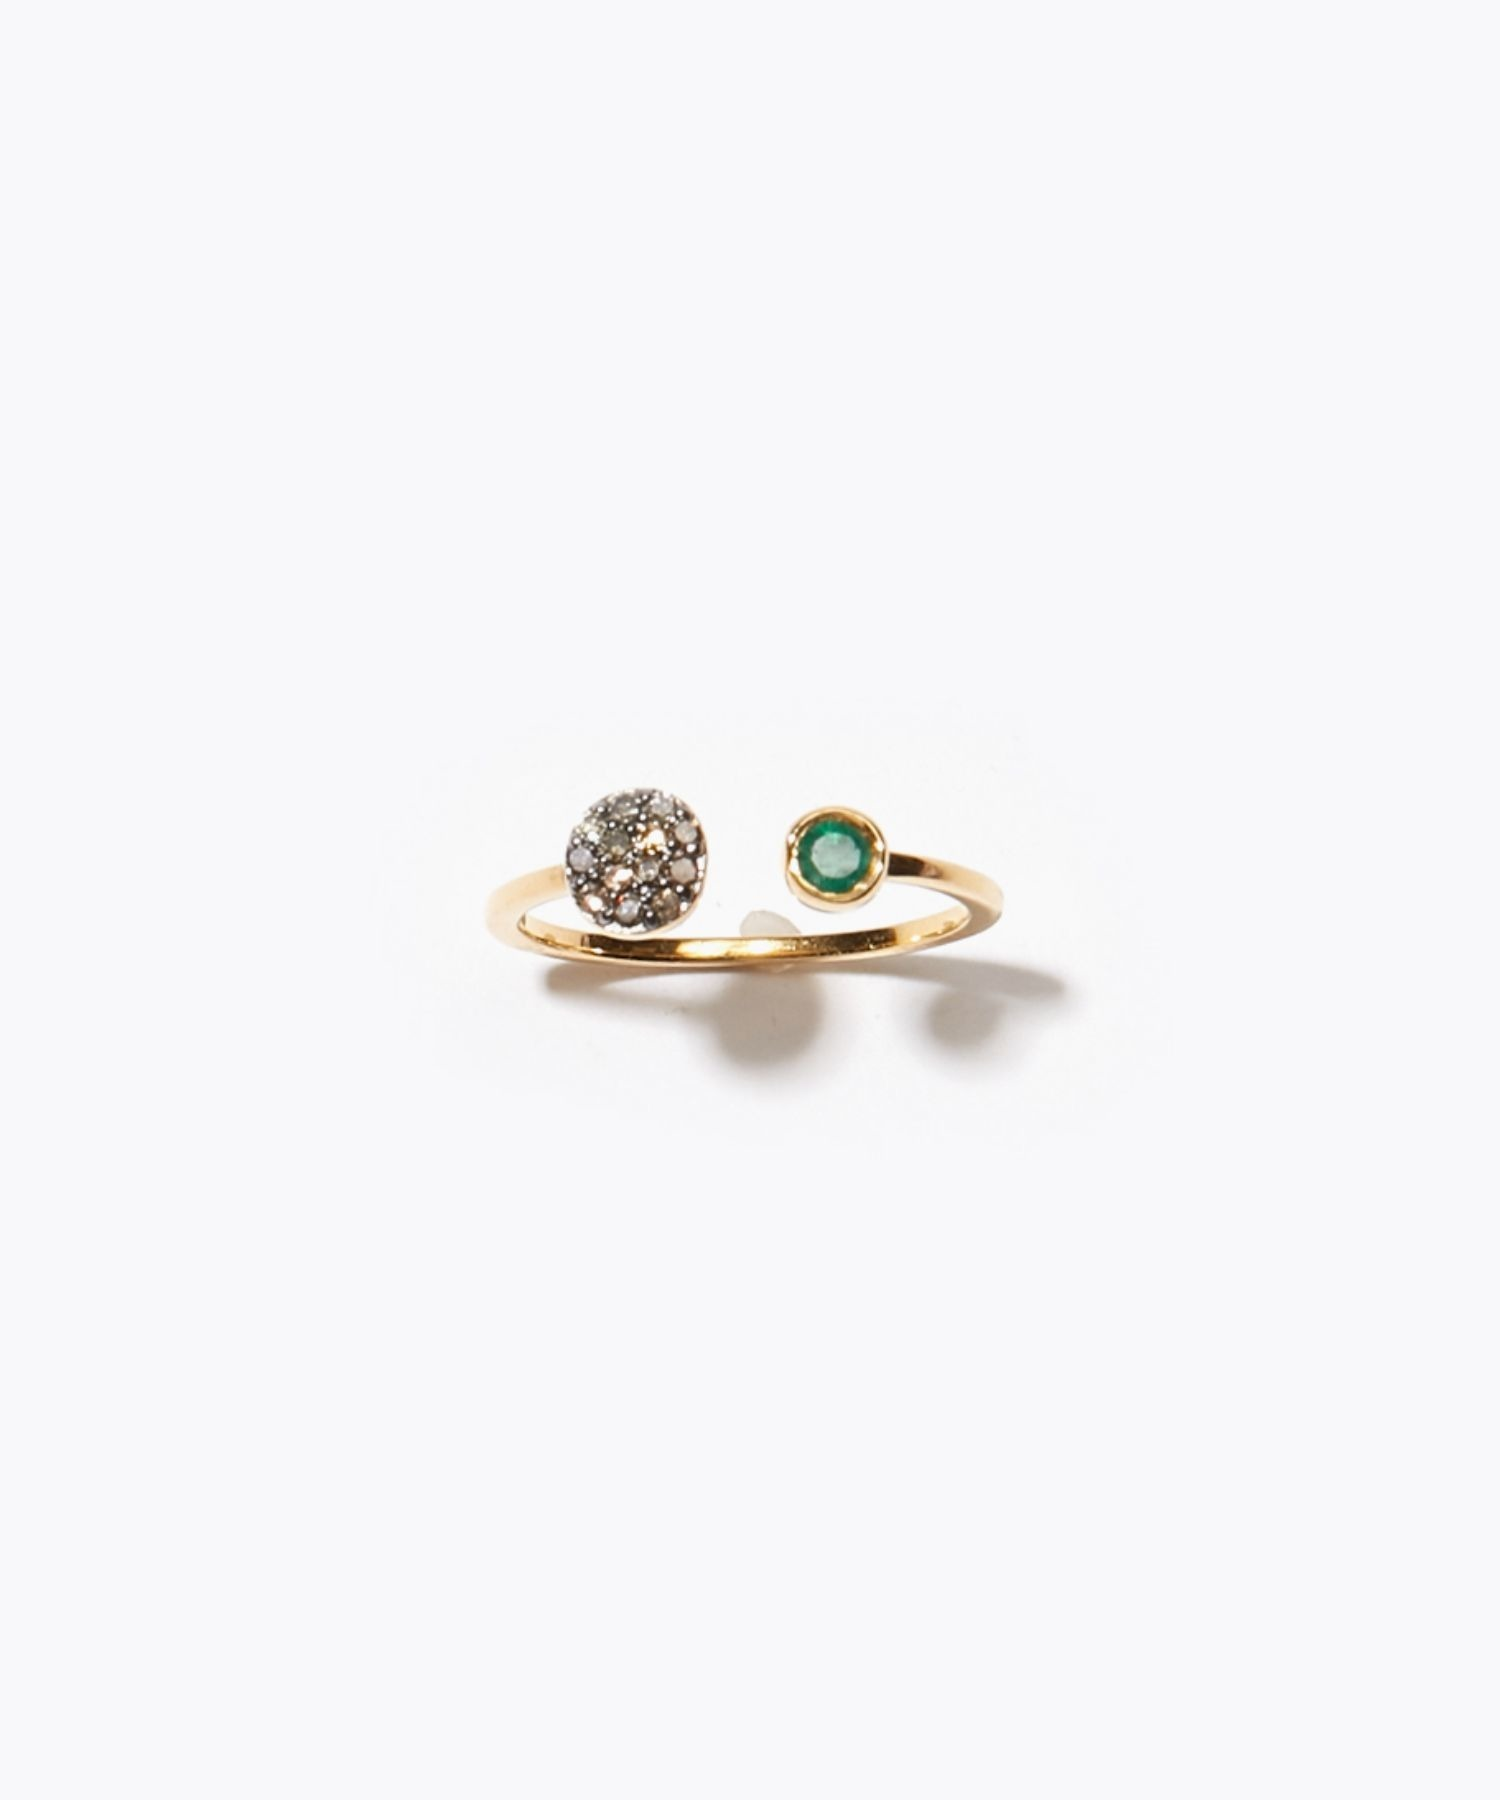 [elafonisi] aflare disque emerald and pave diamondss open ring